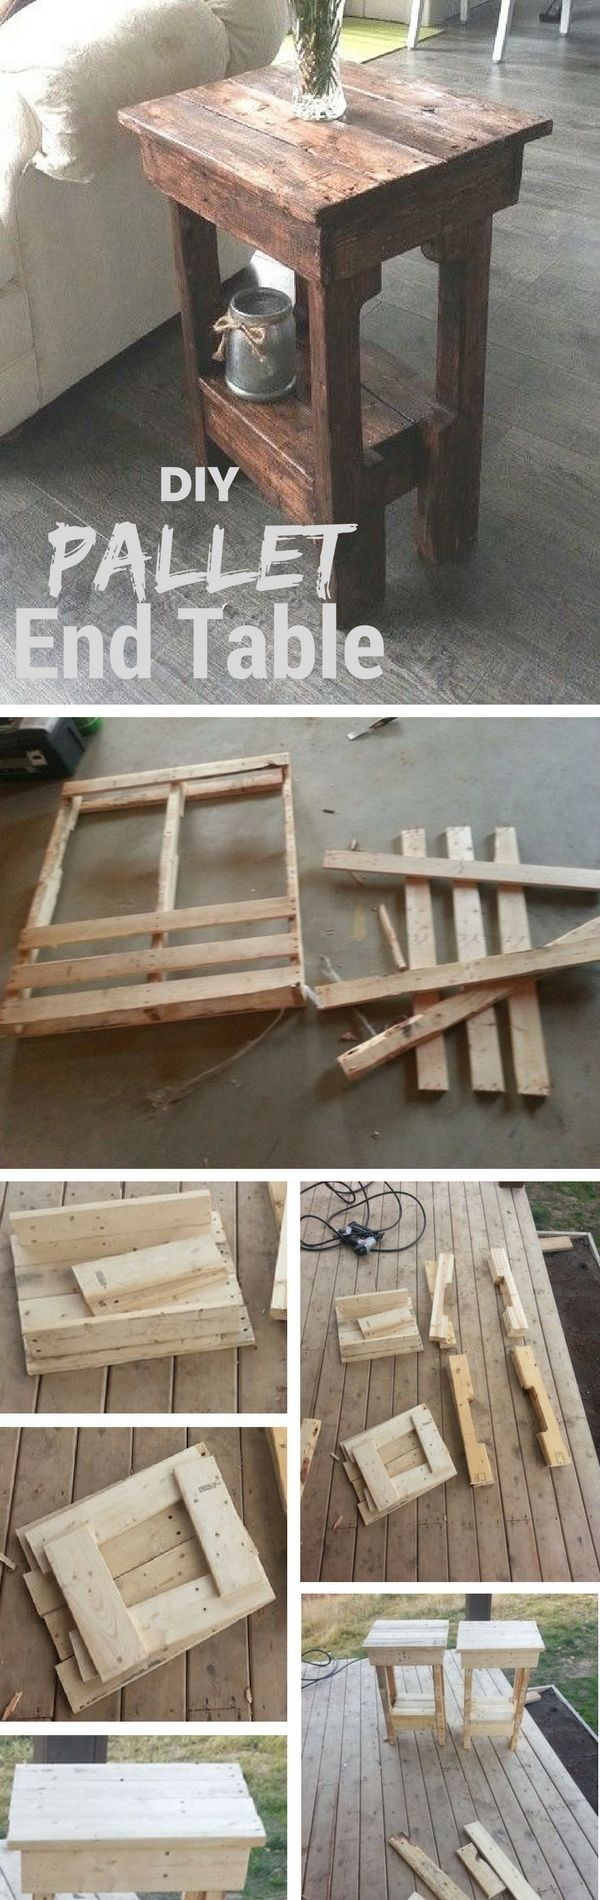 Make this easy DIY end table from pallet wood @Industry Standard Design